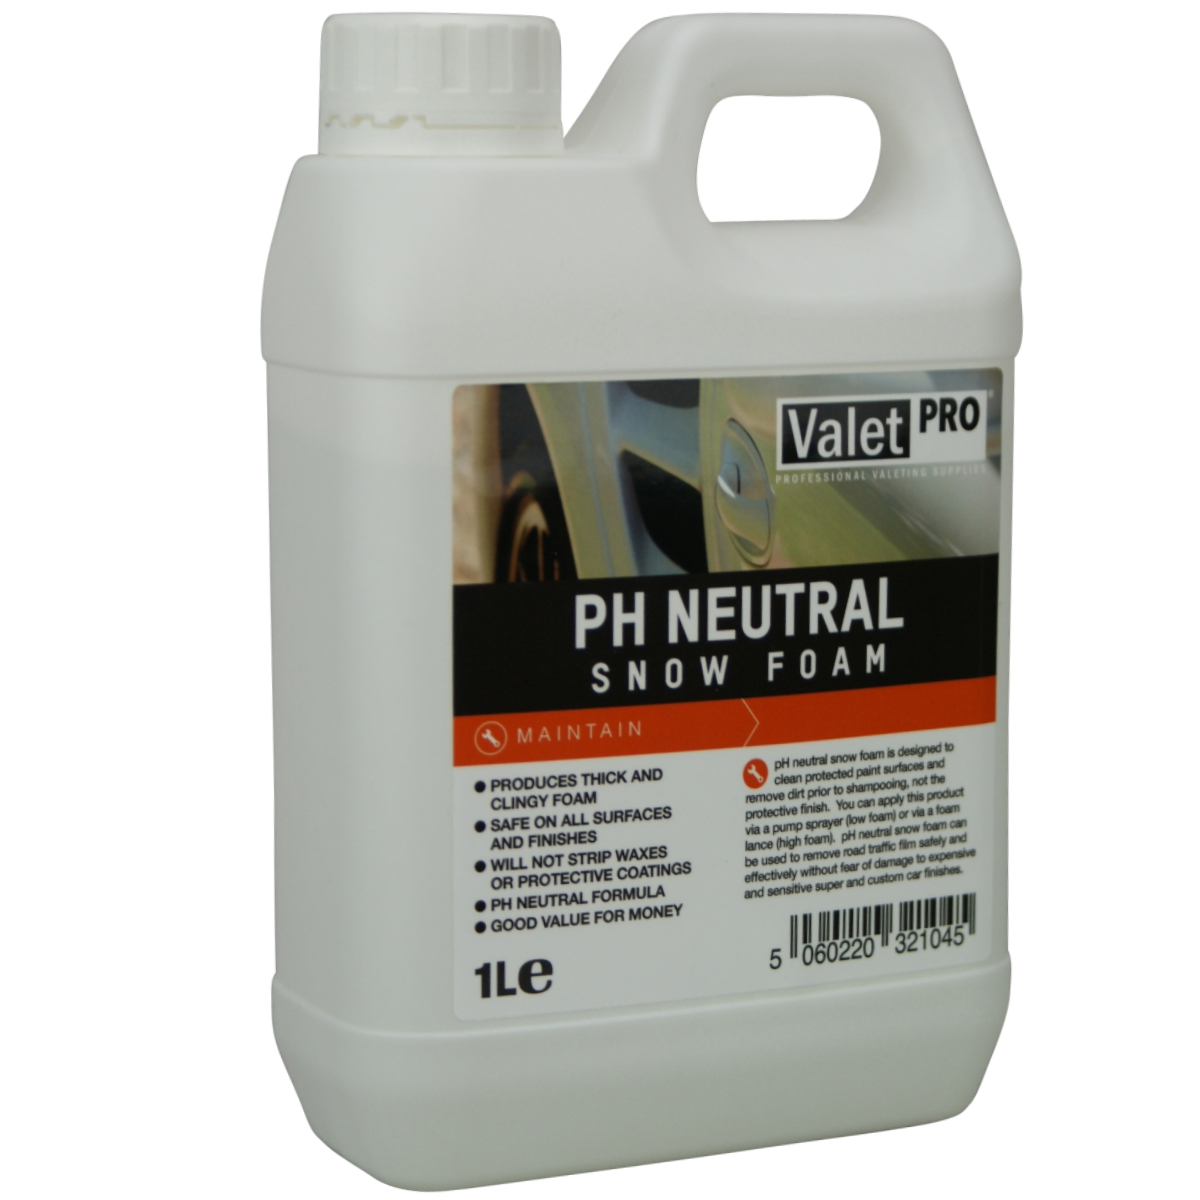 valet pro ph neutral snow foam shampoo 1 liter 670000. Black Bedroom Furniture Sets. Home Design Ideas